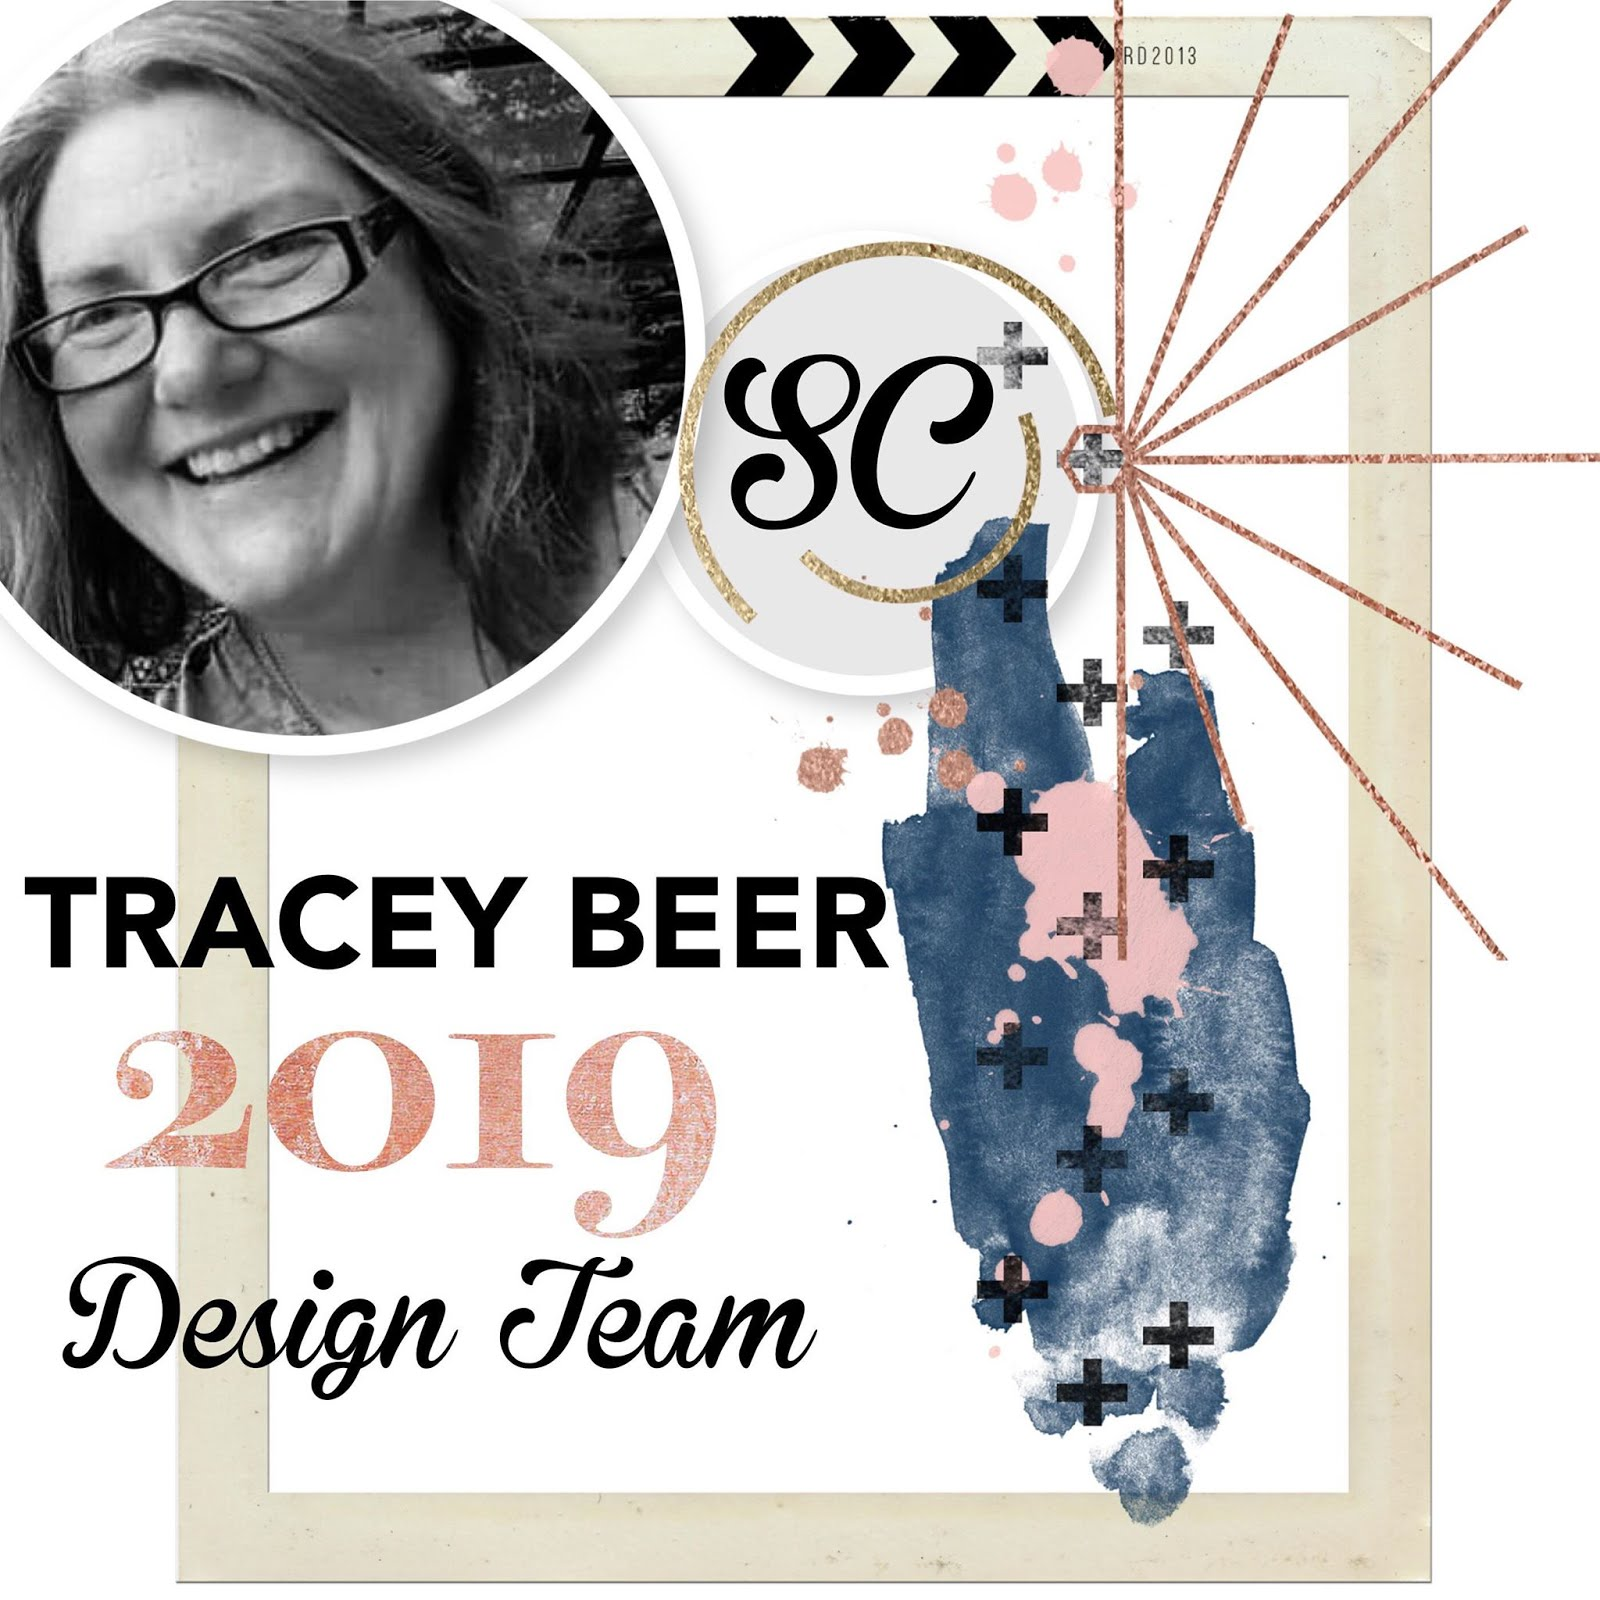 Tracey Beer